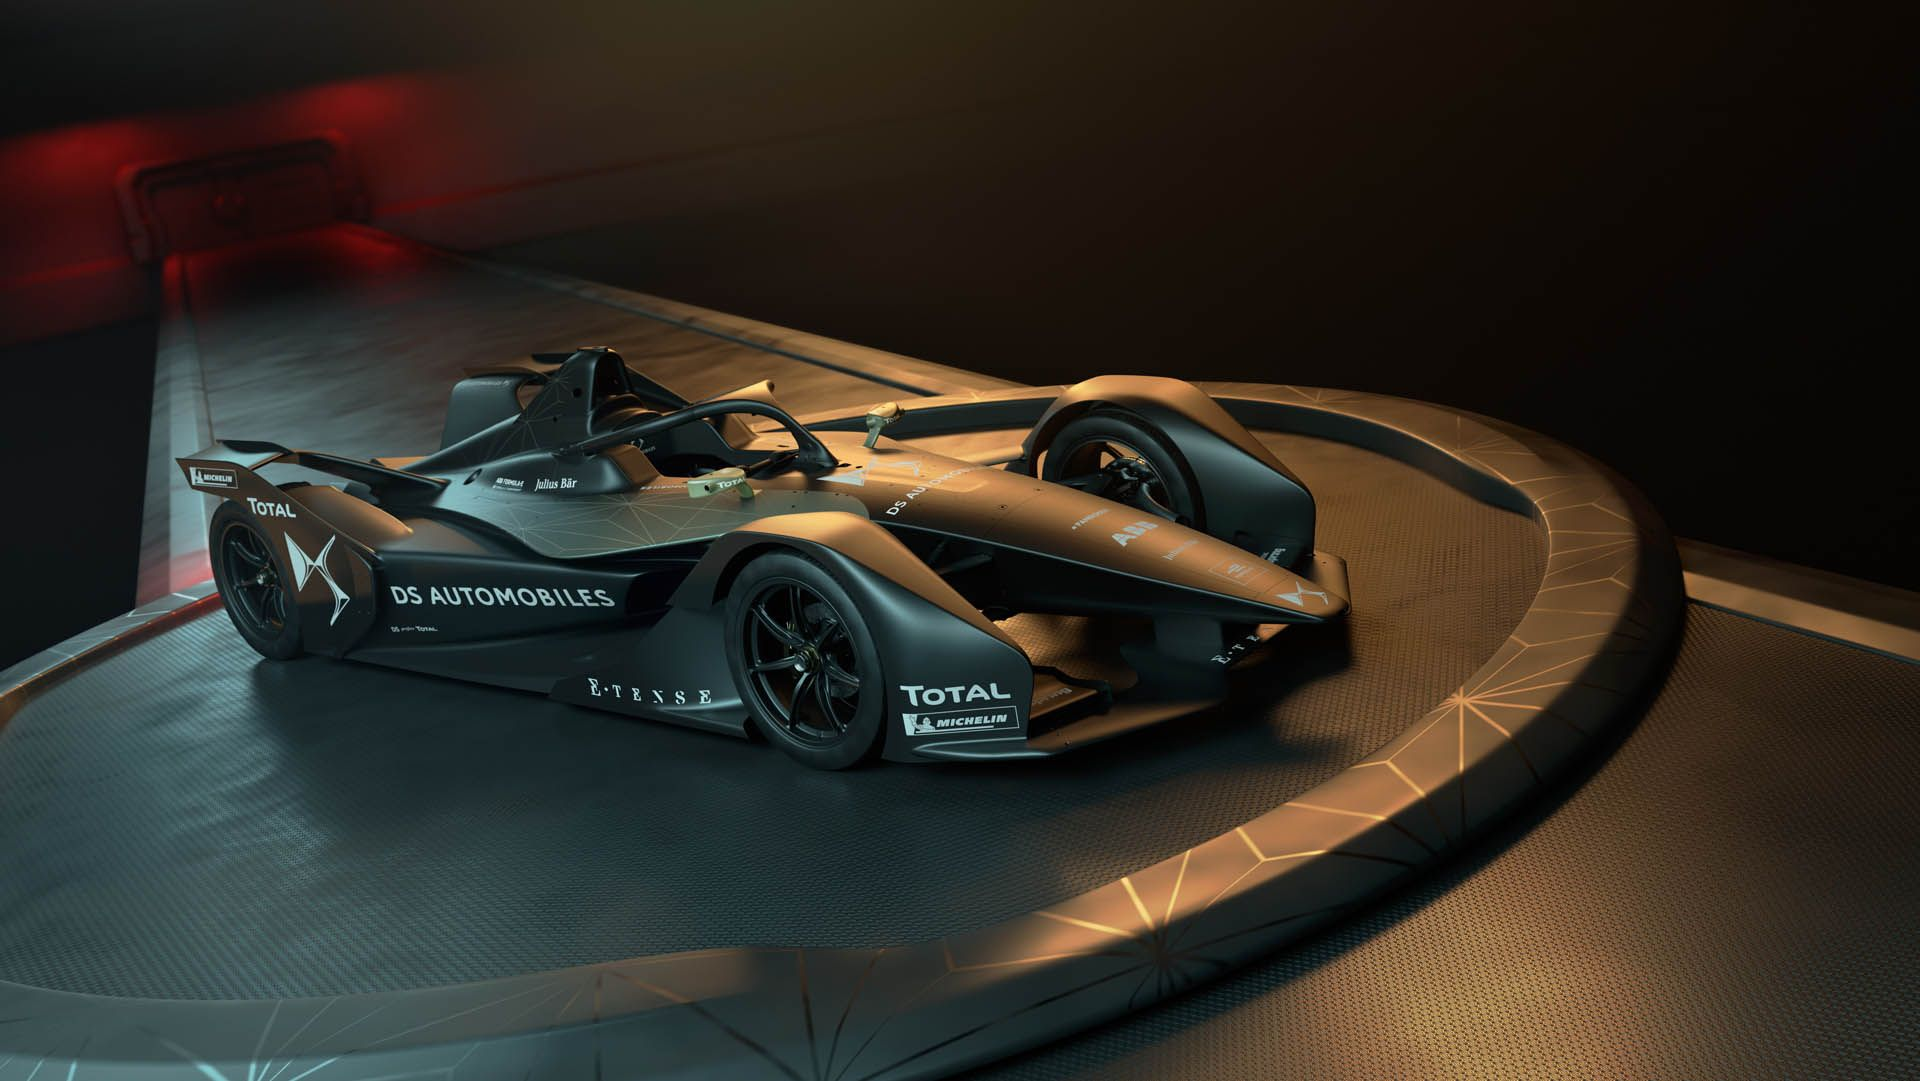 Ds E Tense Fe 19 Looks The Most Batmobile Like Yet Carscoops Ds Automobiles Racing Formula E